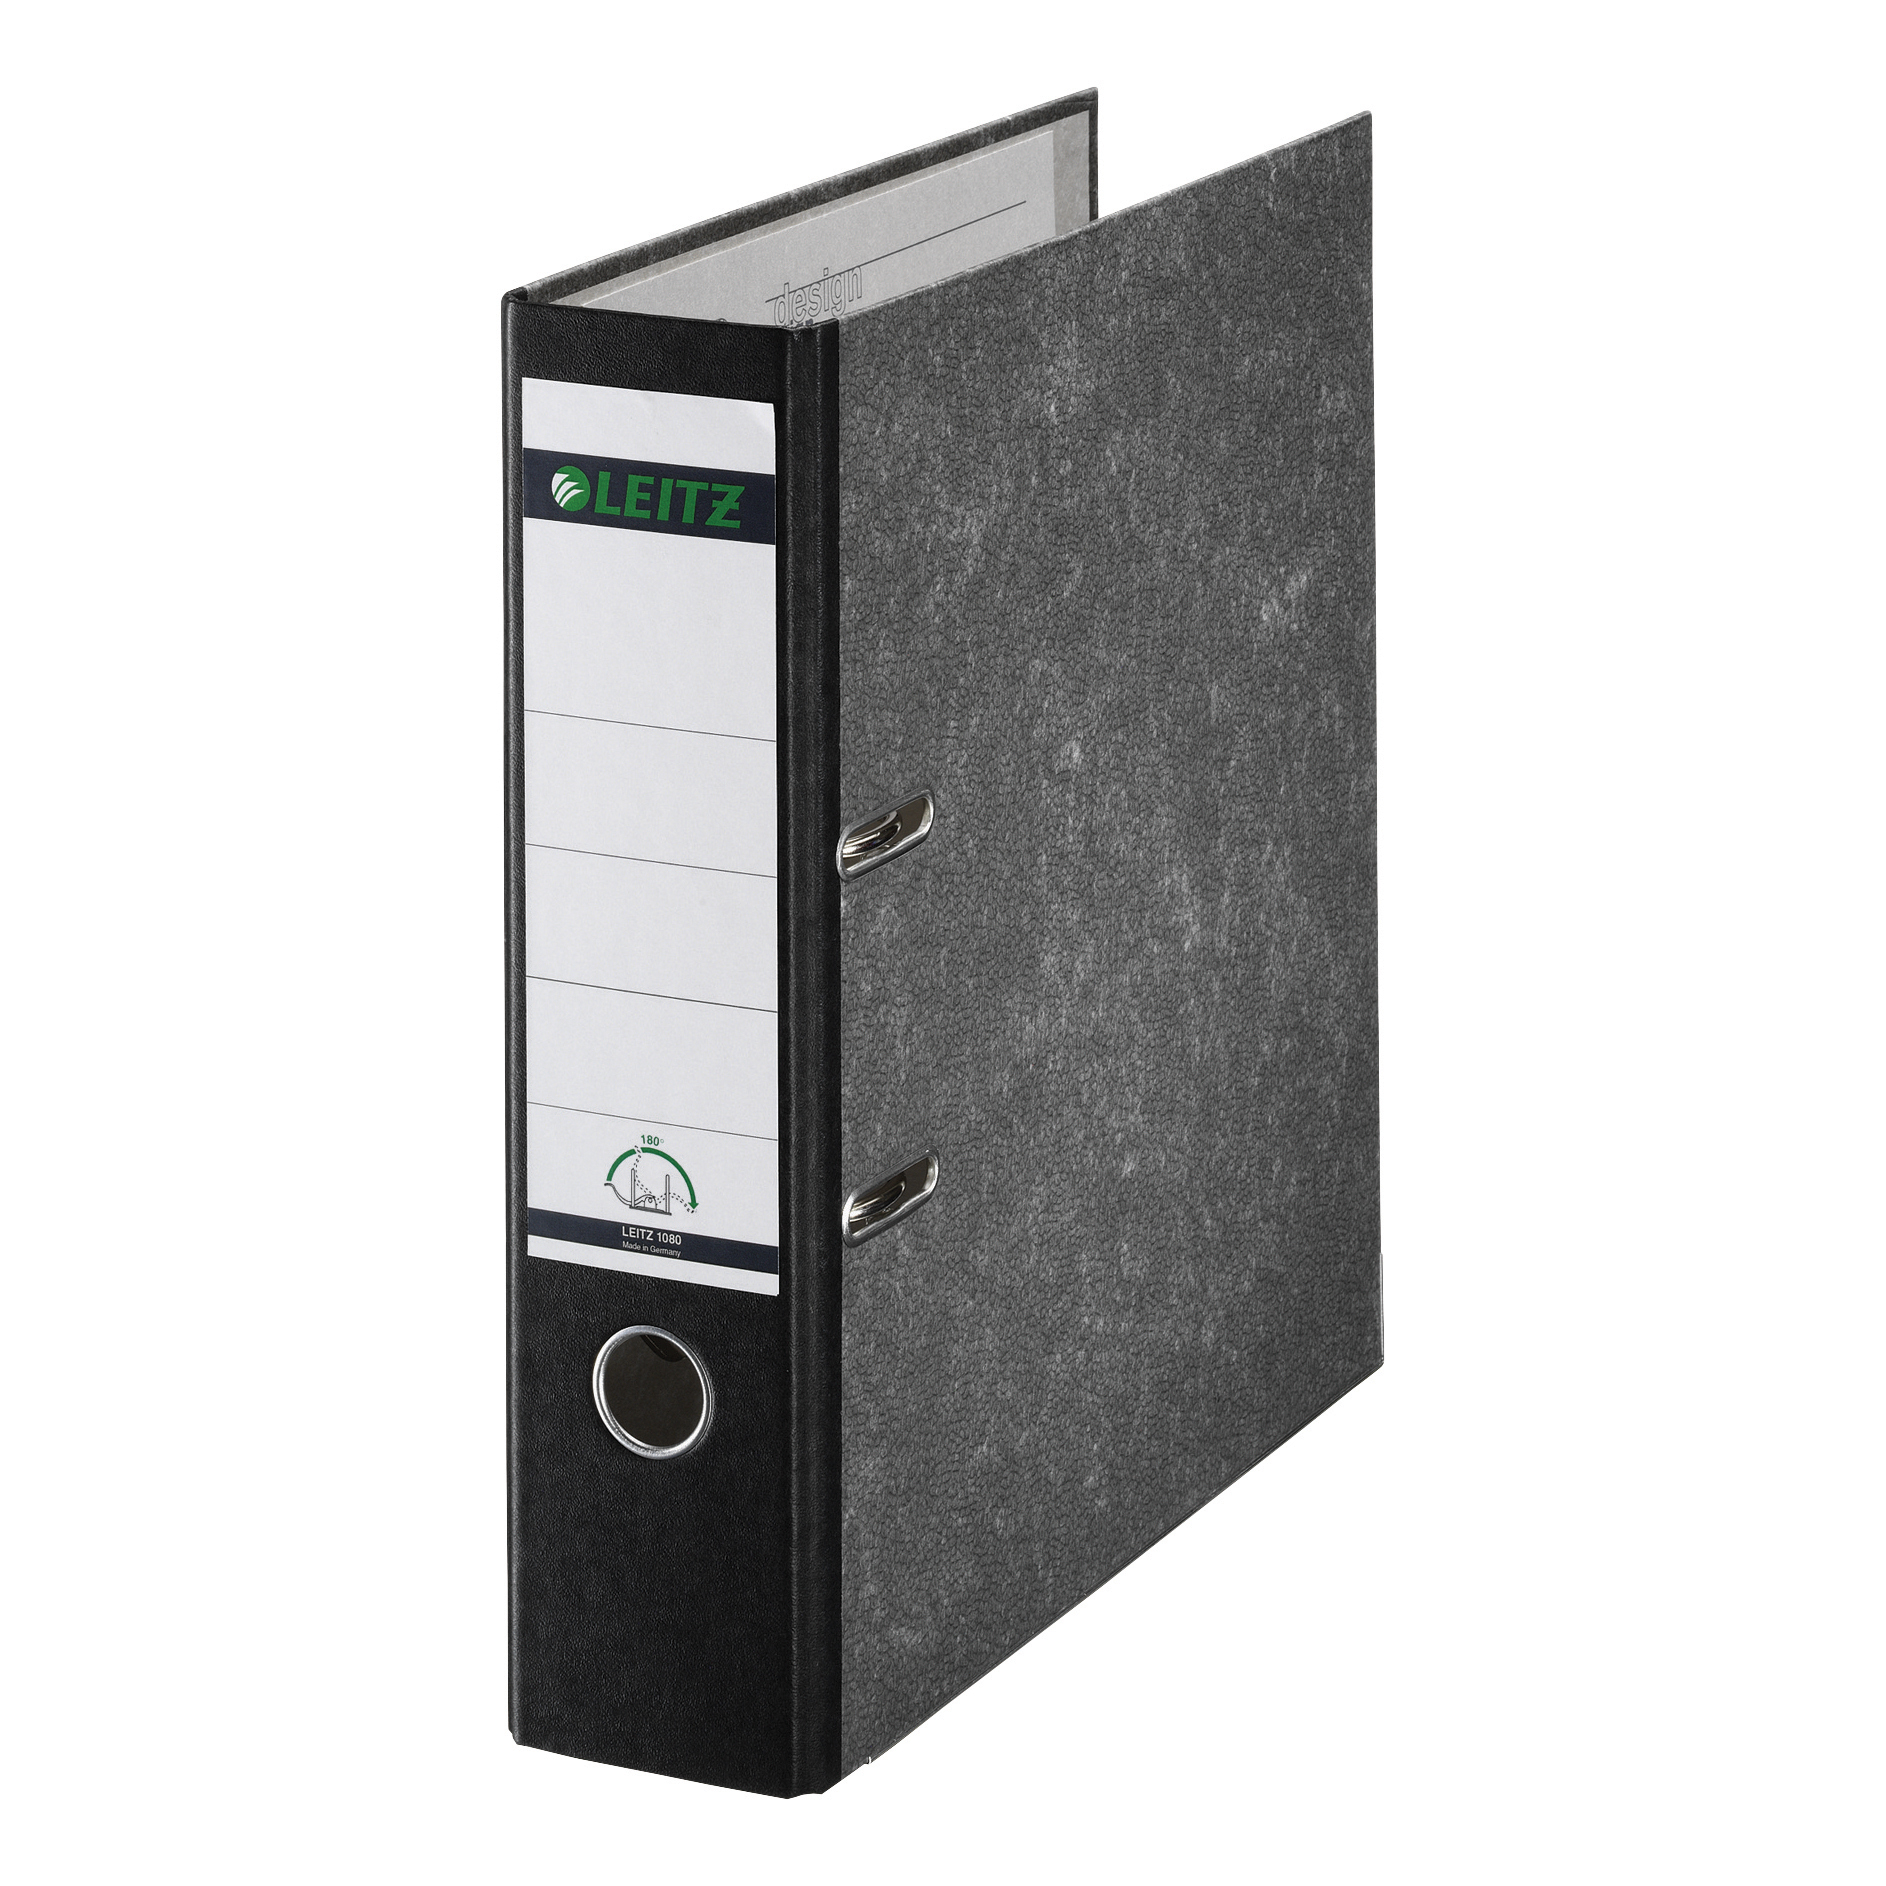 Leitz Standard Lever Arch File 80mm Spine Foolscap Black Ref 1082-95 [Pack 10] [REDEMPTION] Jan-Mar20